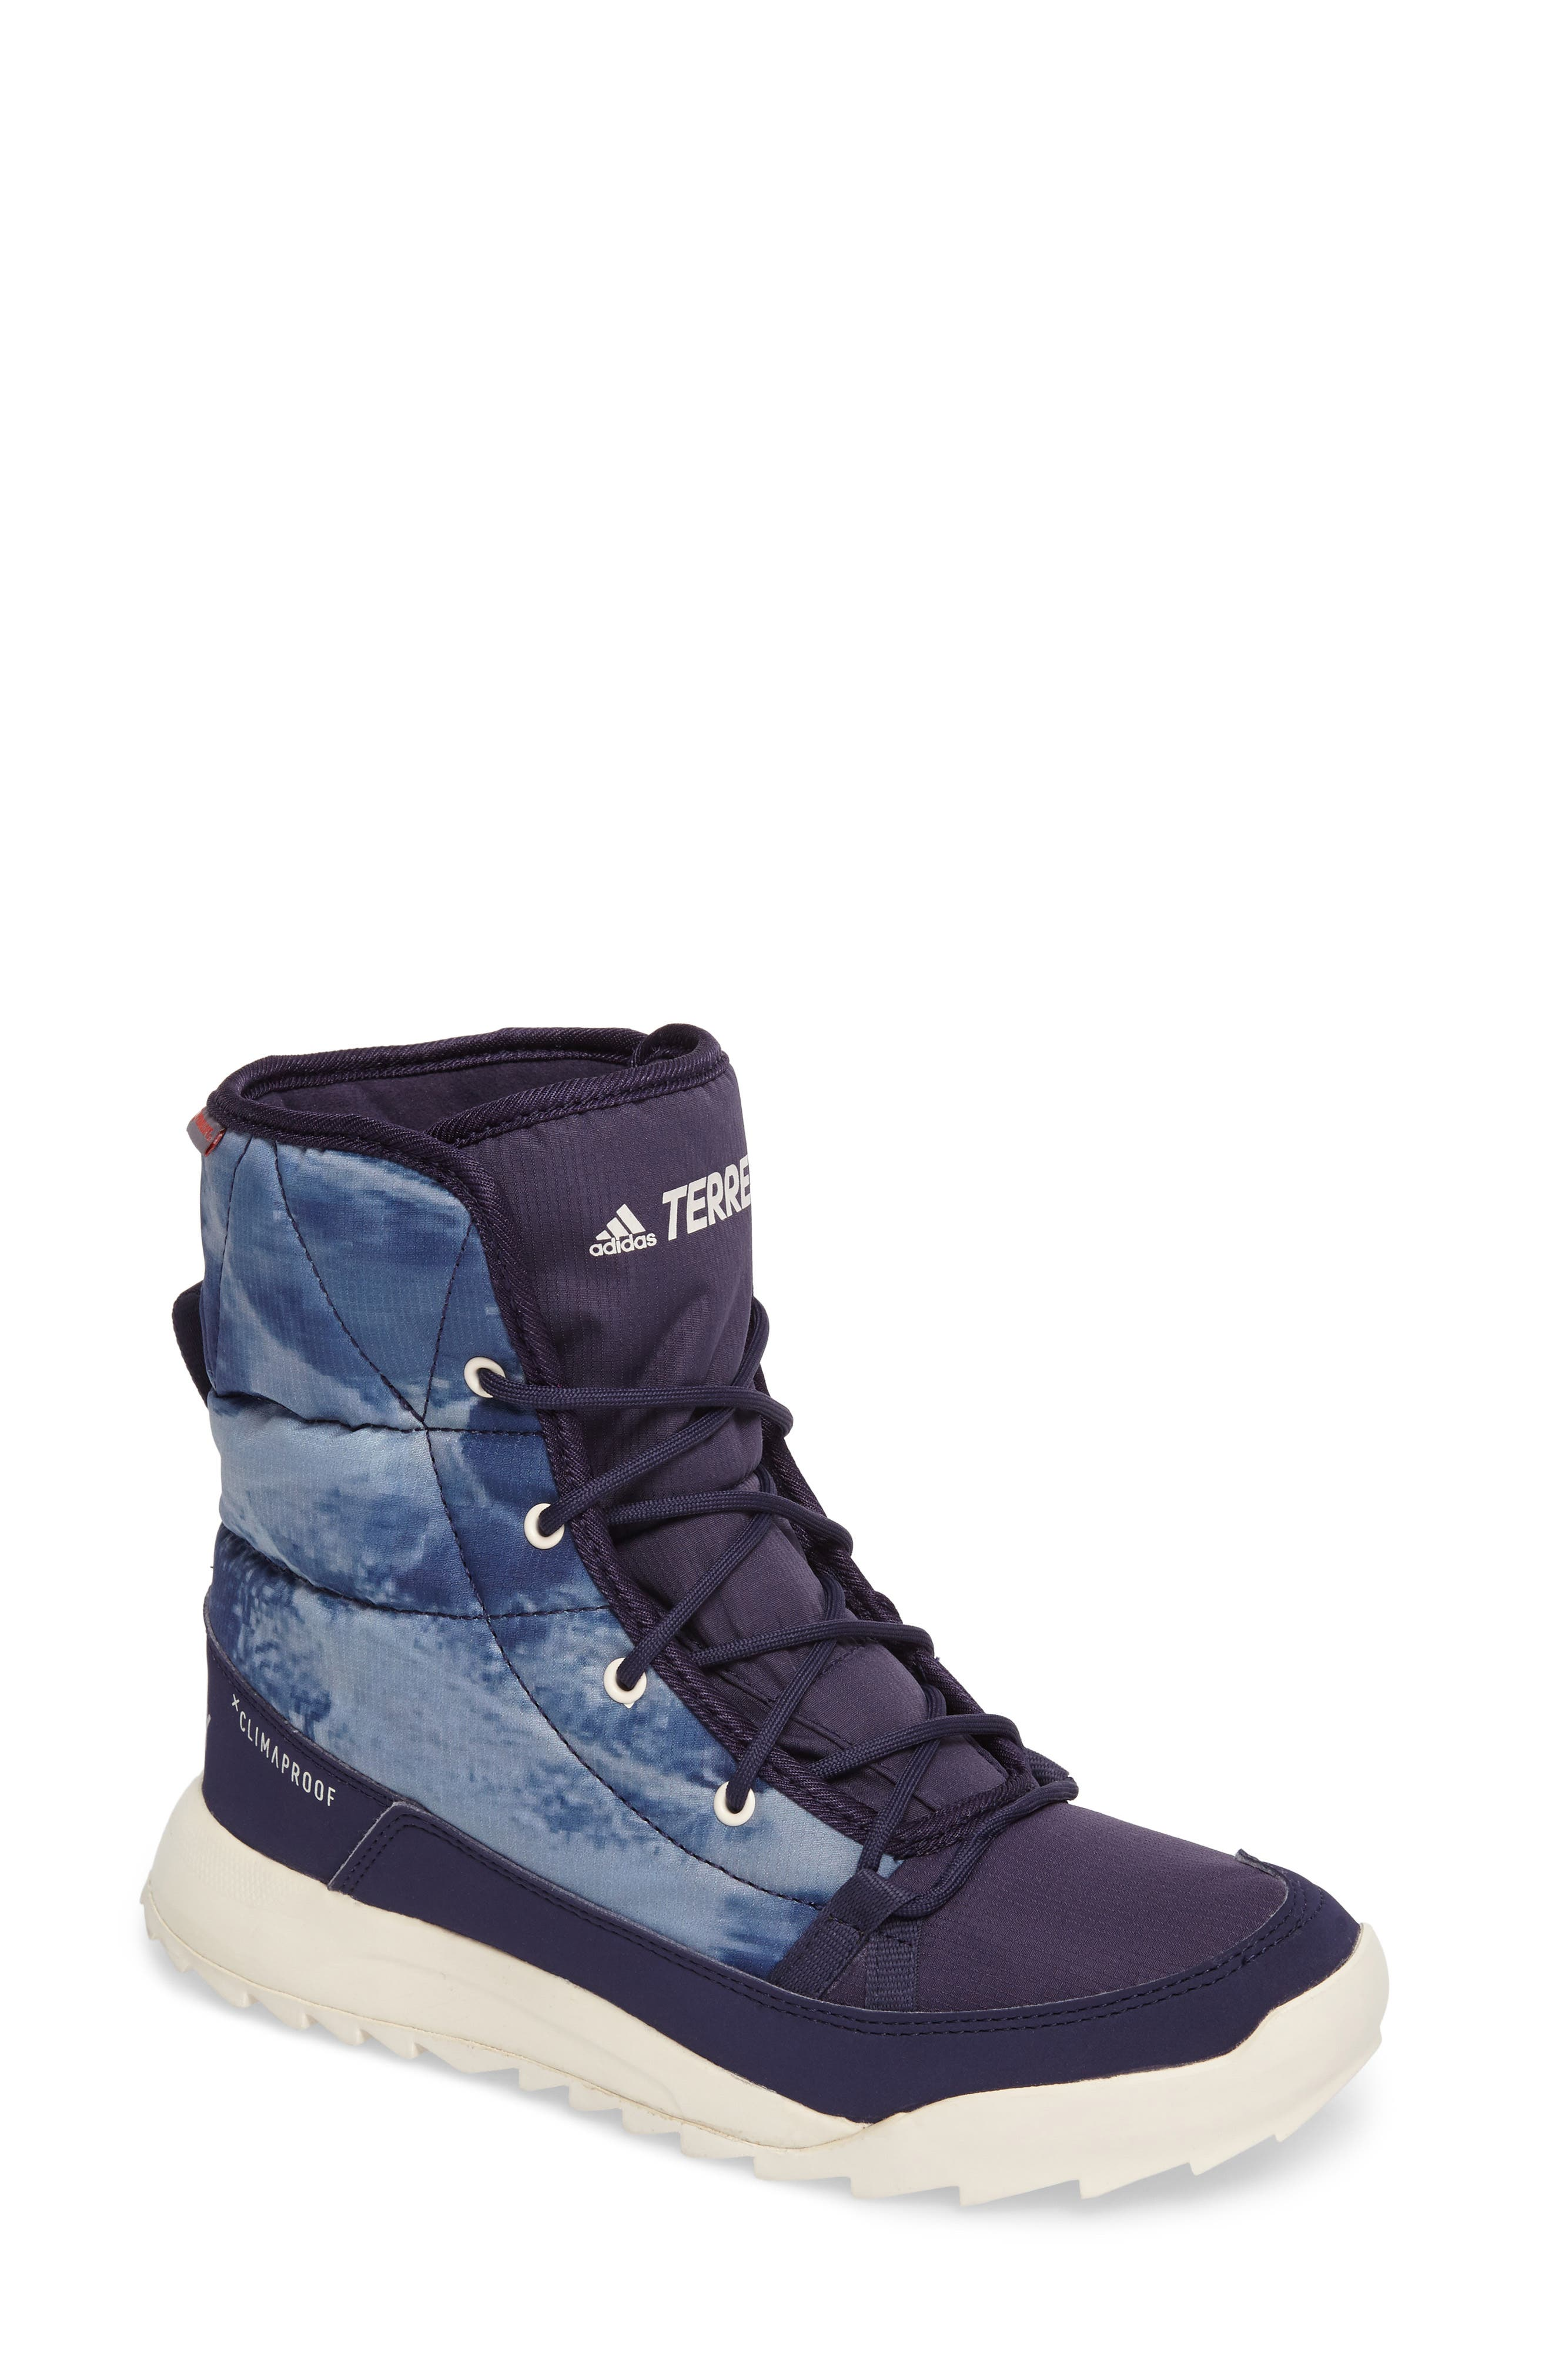 Alternate Image 1 Selected - adidas Terrex Choleah Waterproof Boot (Women)